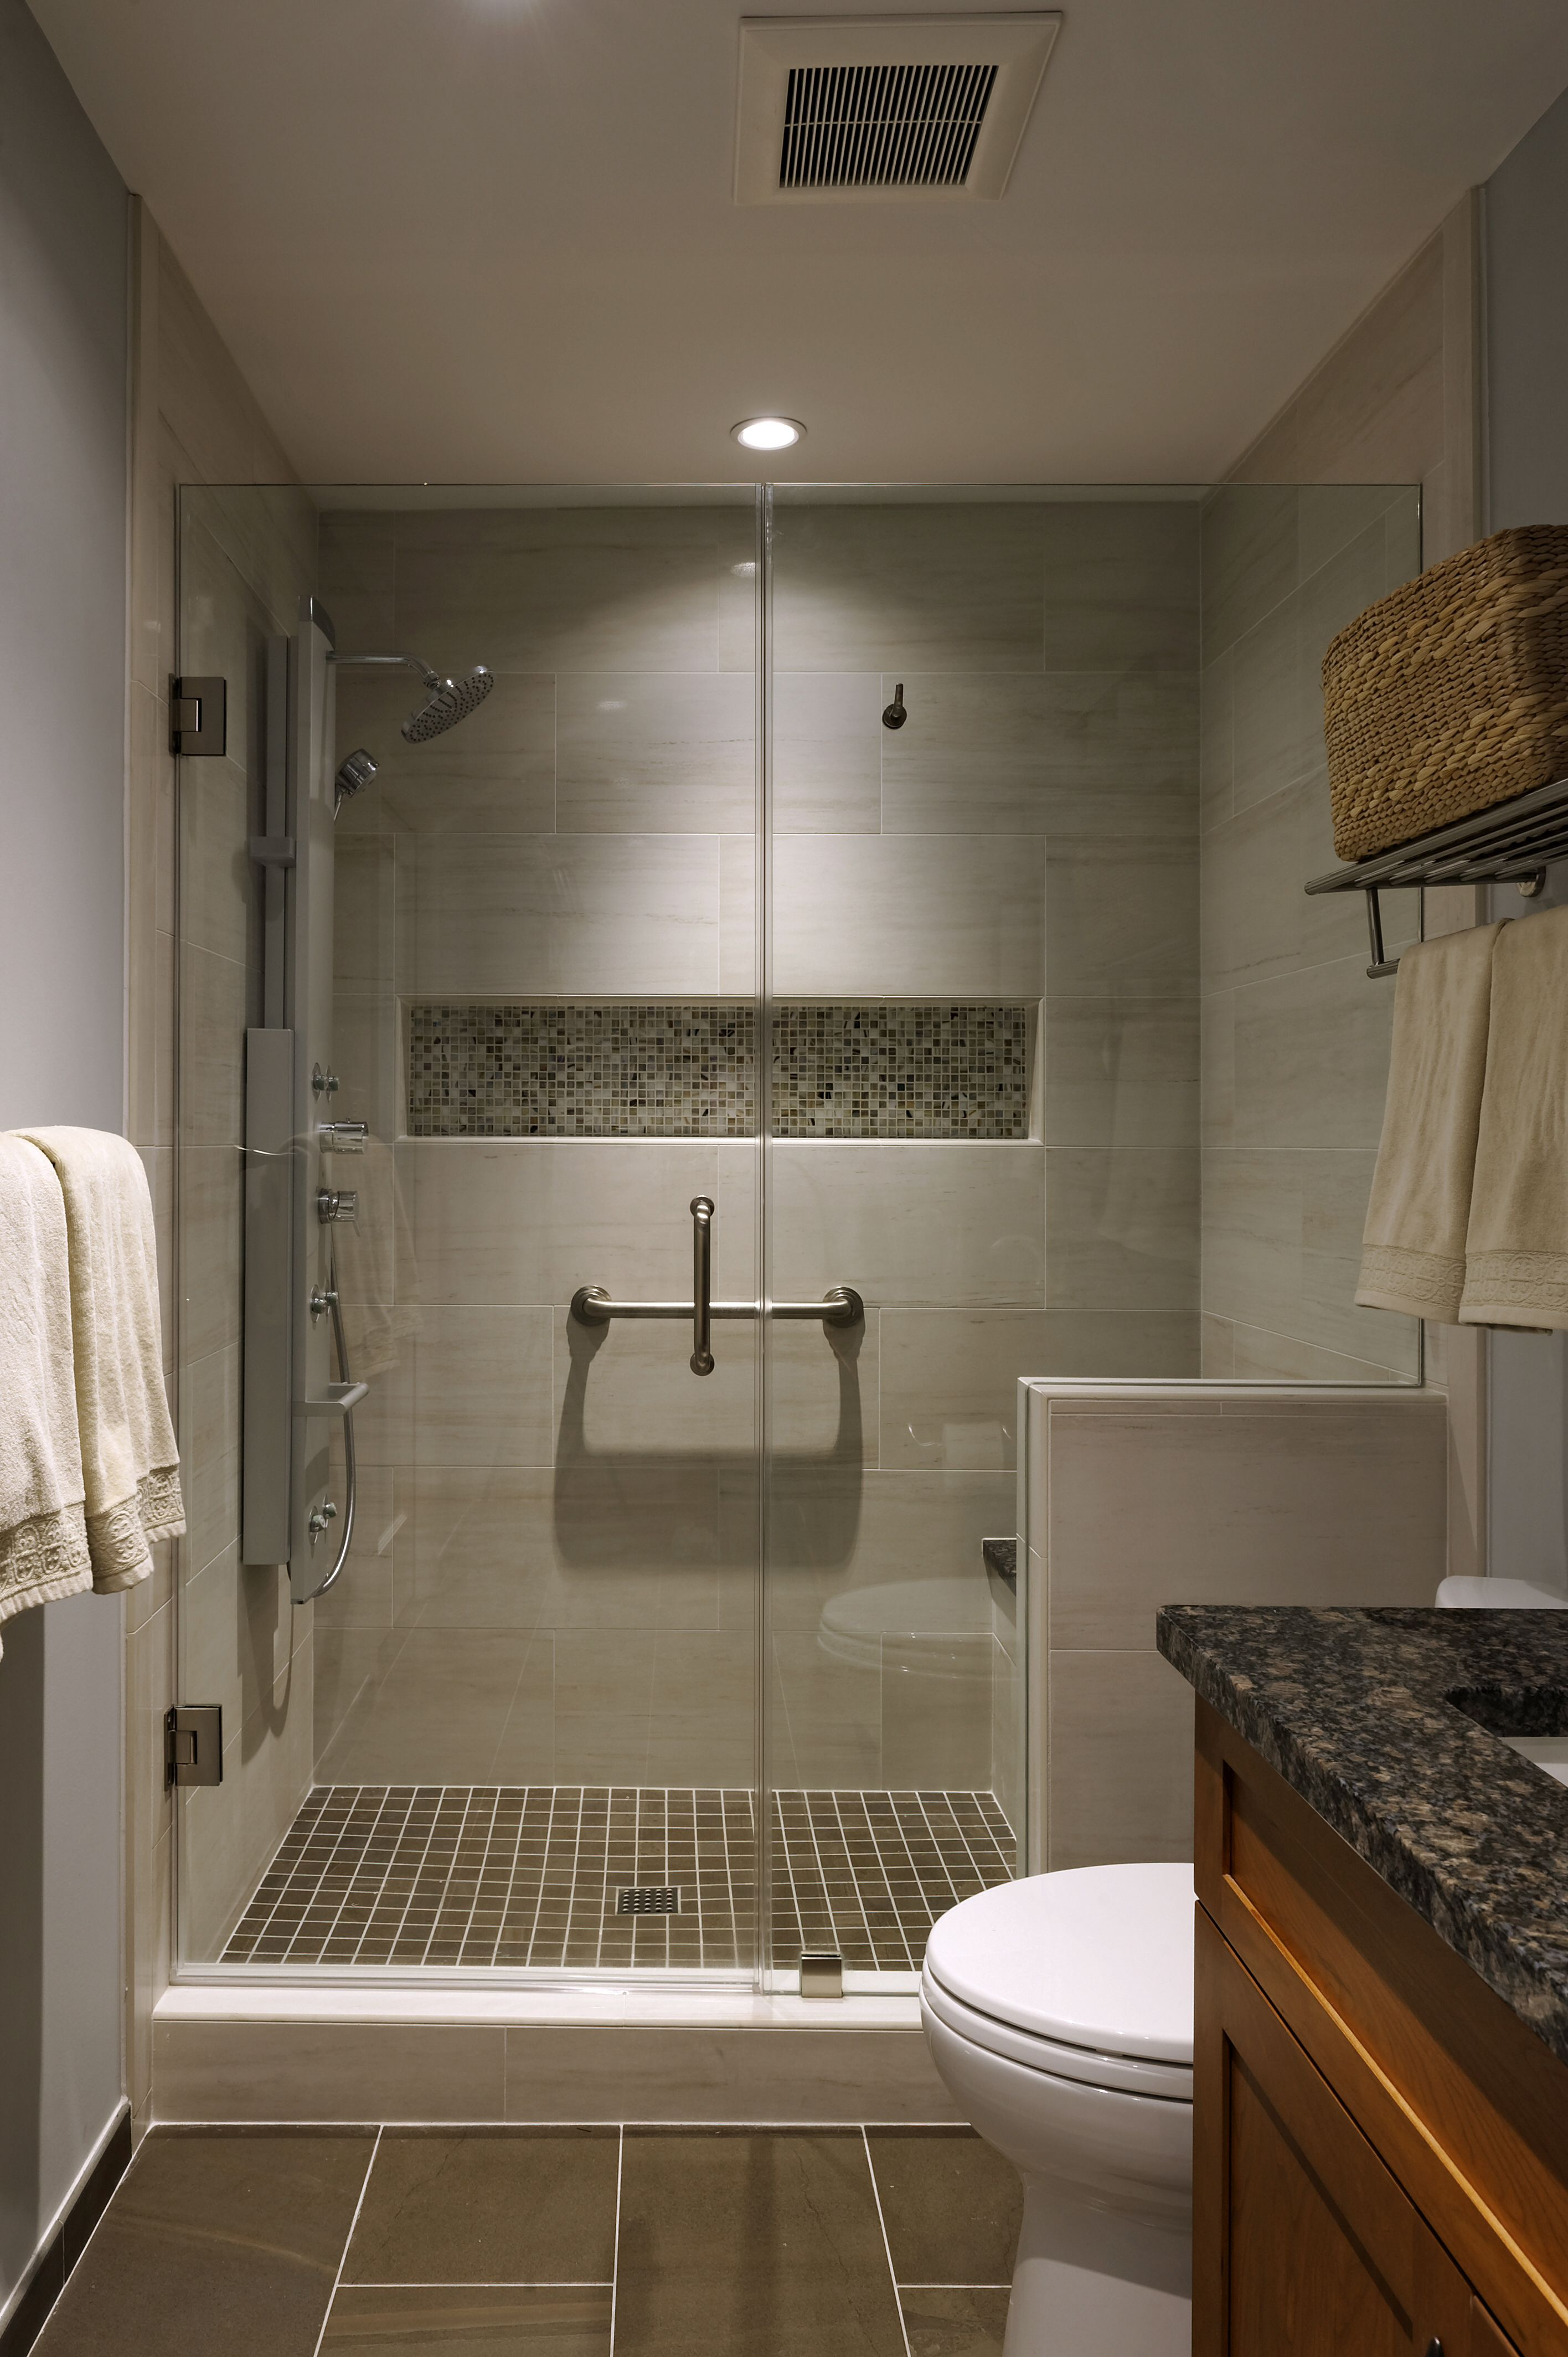 Creamy Beige With Warm Brown Porcelain And Glass Shower Tile Is Current And  Timeless. Makes A Grab Bar Look Good